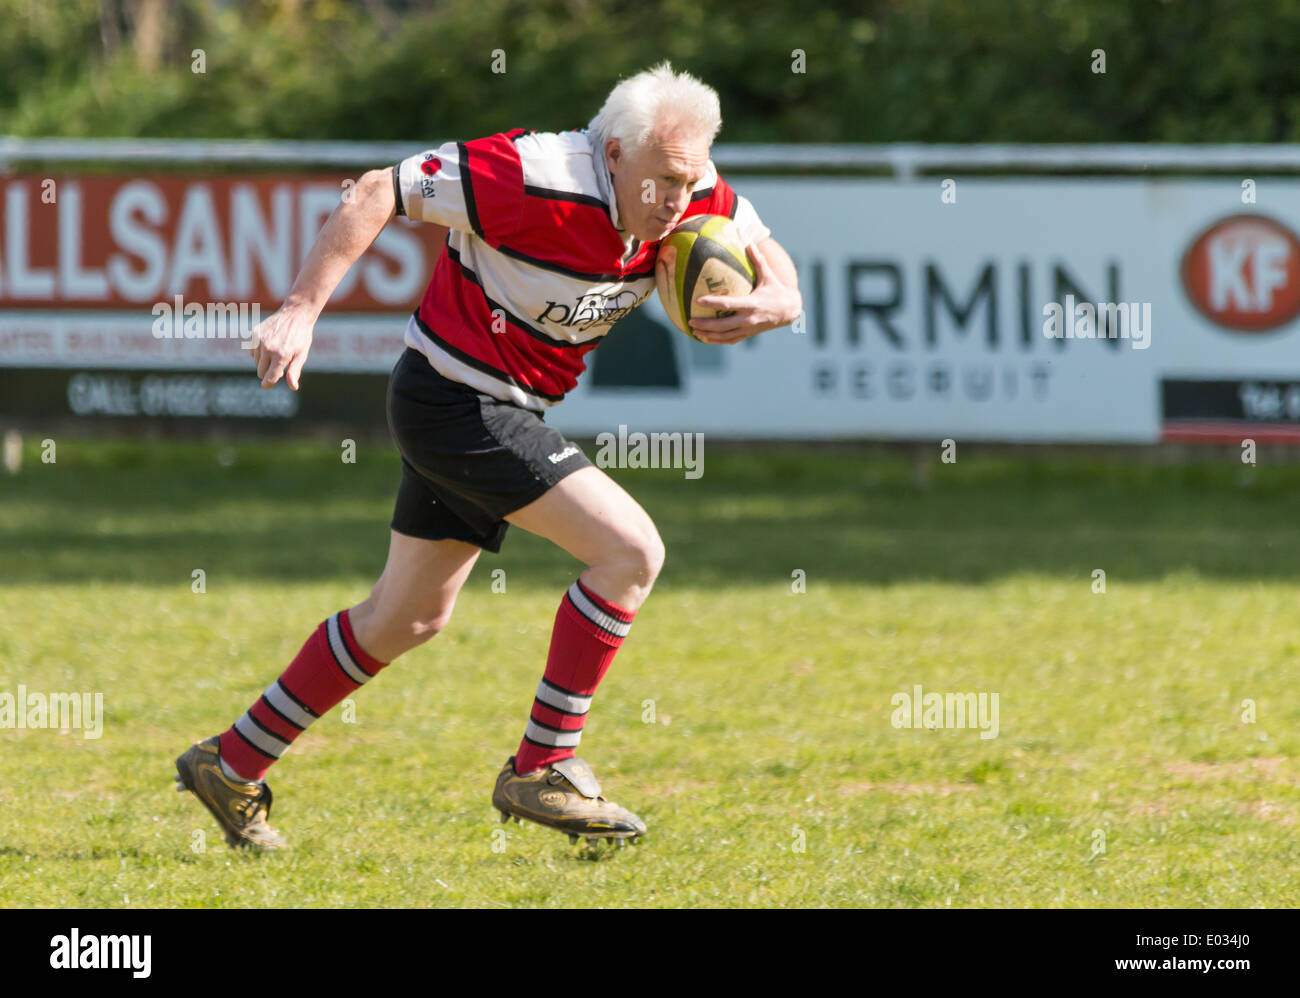 Mature Rugby Player Running with Ball - Stock Image